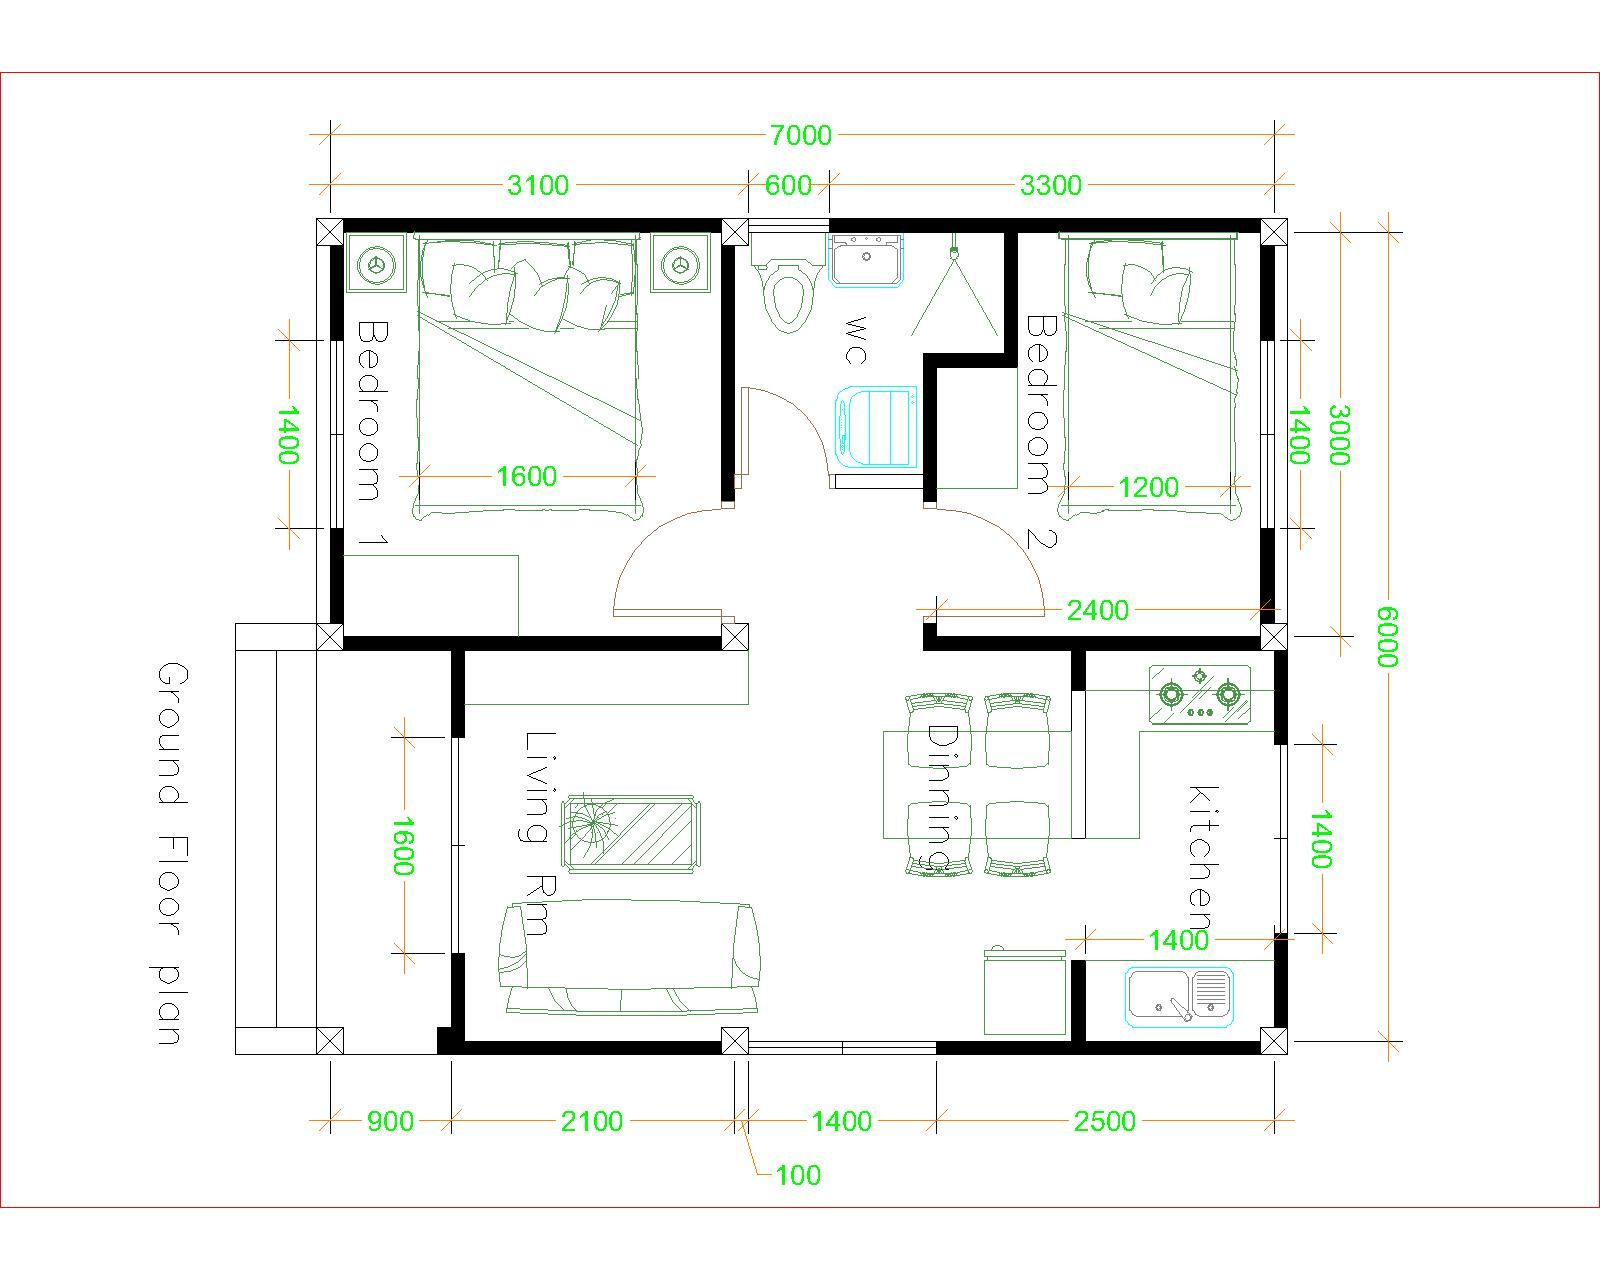 Simple House Plans 6x7 With 2 Bedrooms Hip Roof House Plans 3d In 2020 Simple House Plans Simple House Design Tiny House Layout